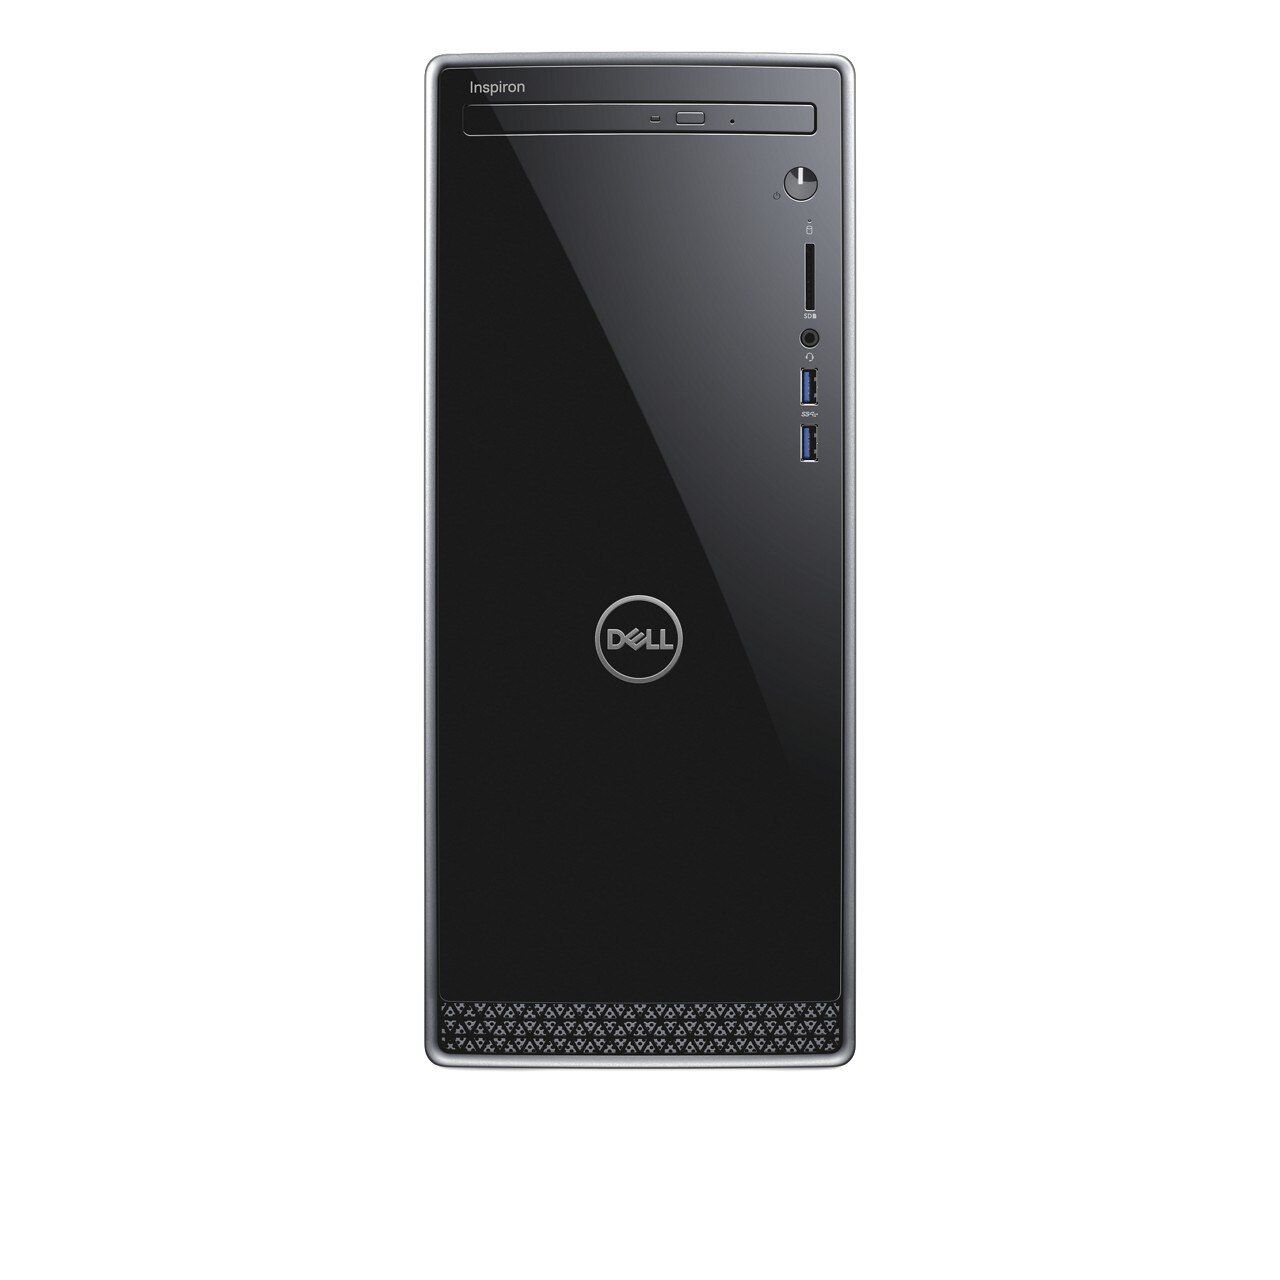 Dell Inspiron 3670 Desktop (i5-8400 / 12GB / 128GB SSD)